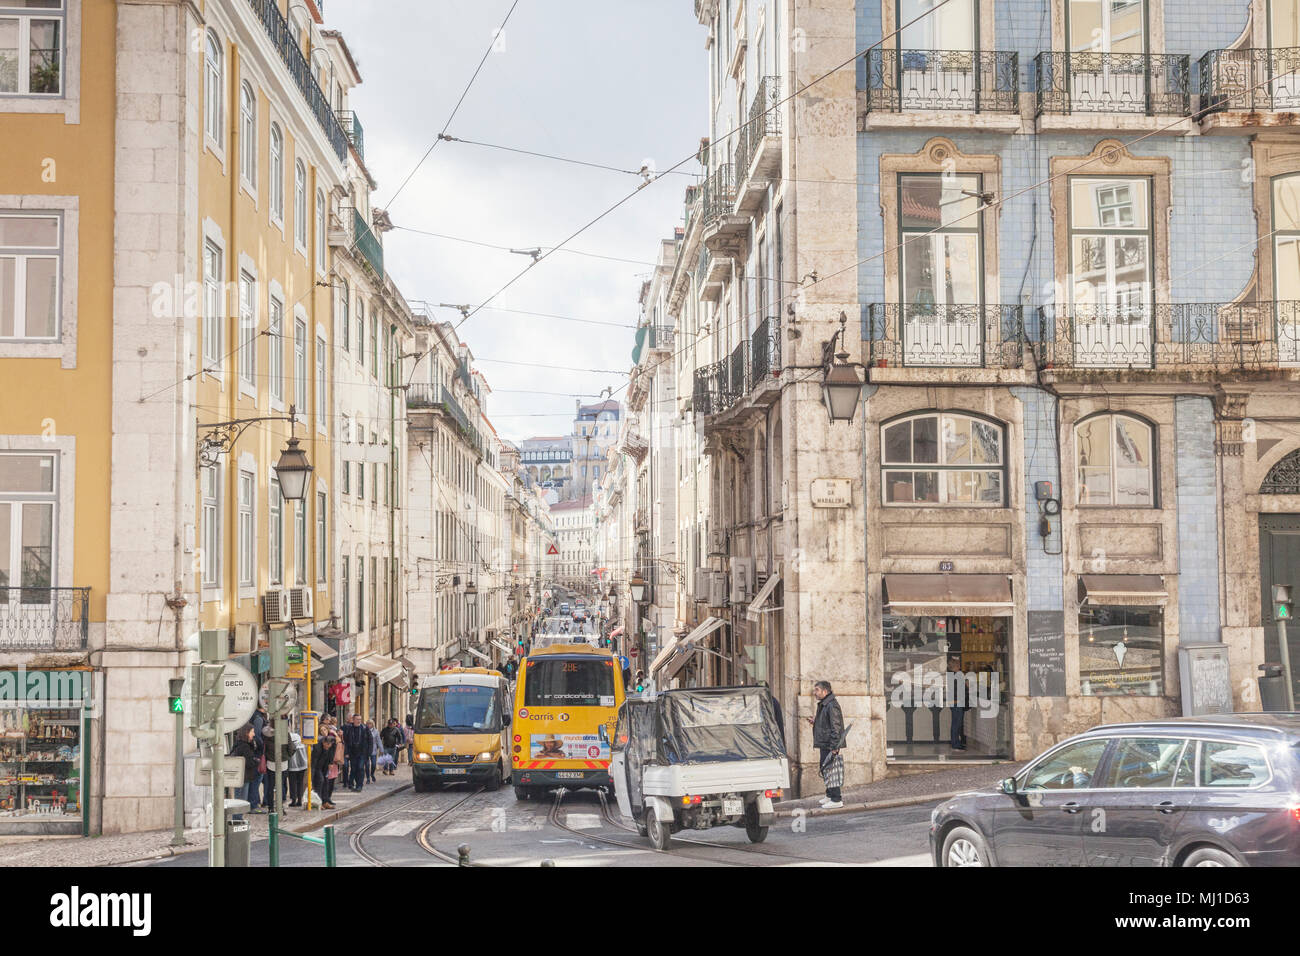 1 March 2018: Lisbon, Portugal - Traffic in a busy street, Rua da Conceicao, in the central city. - Stock Image